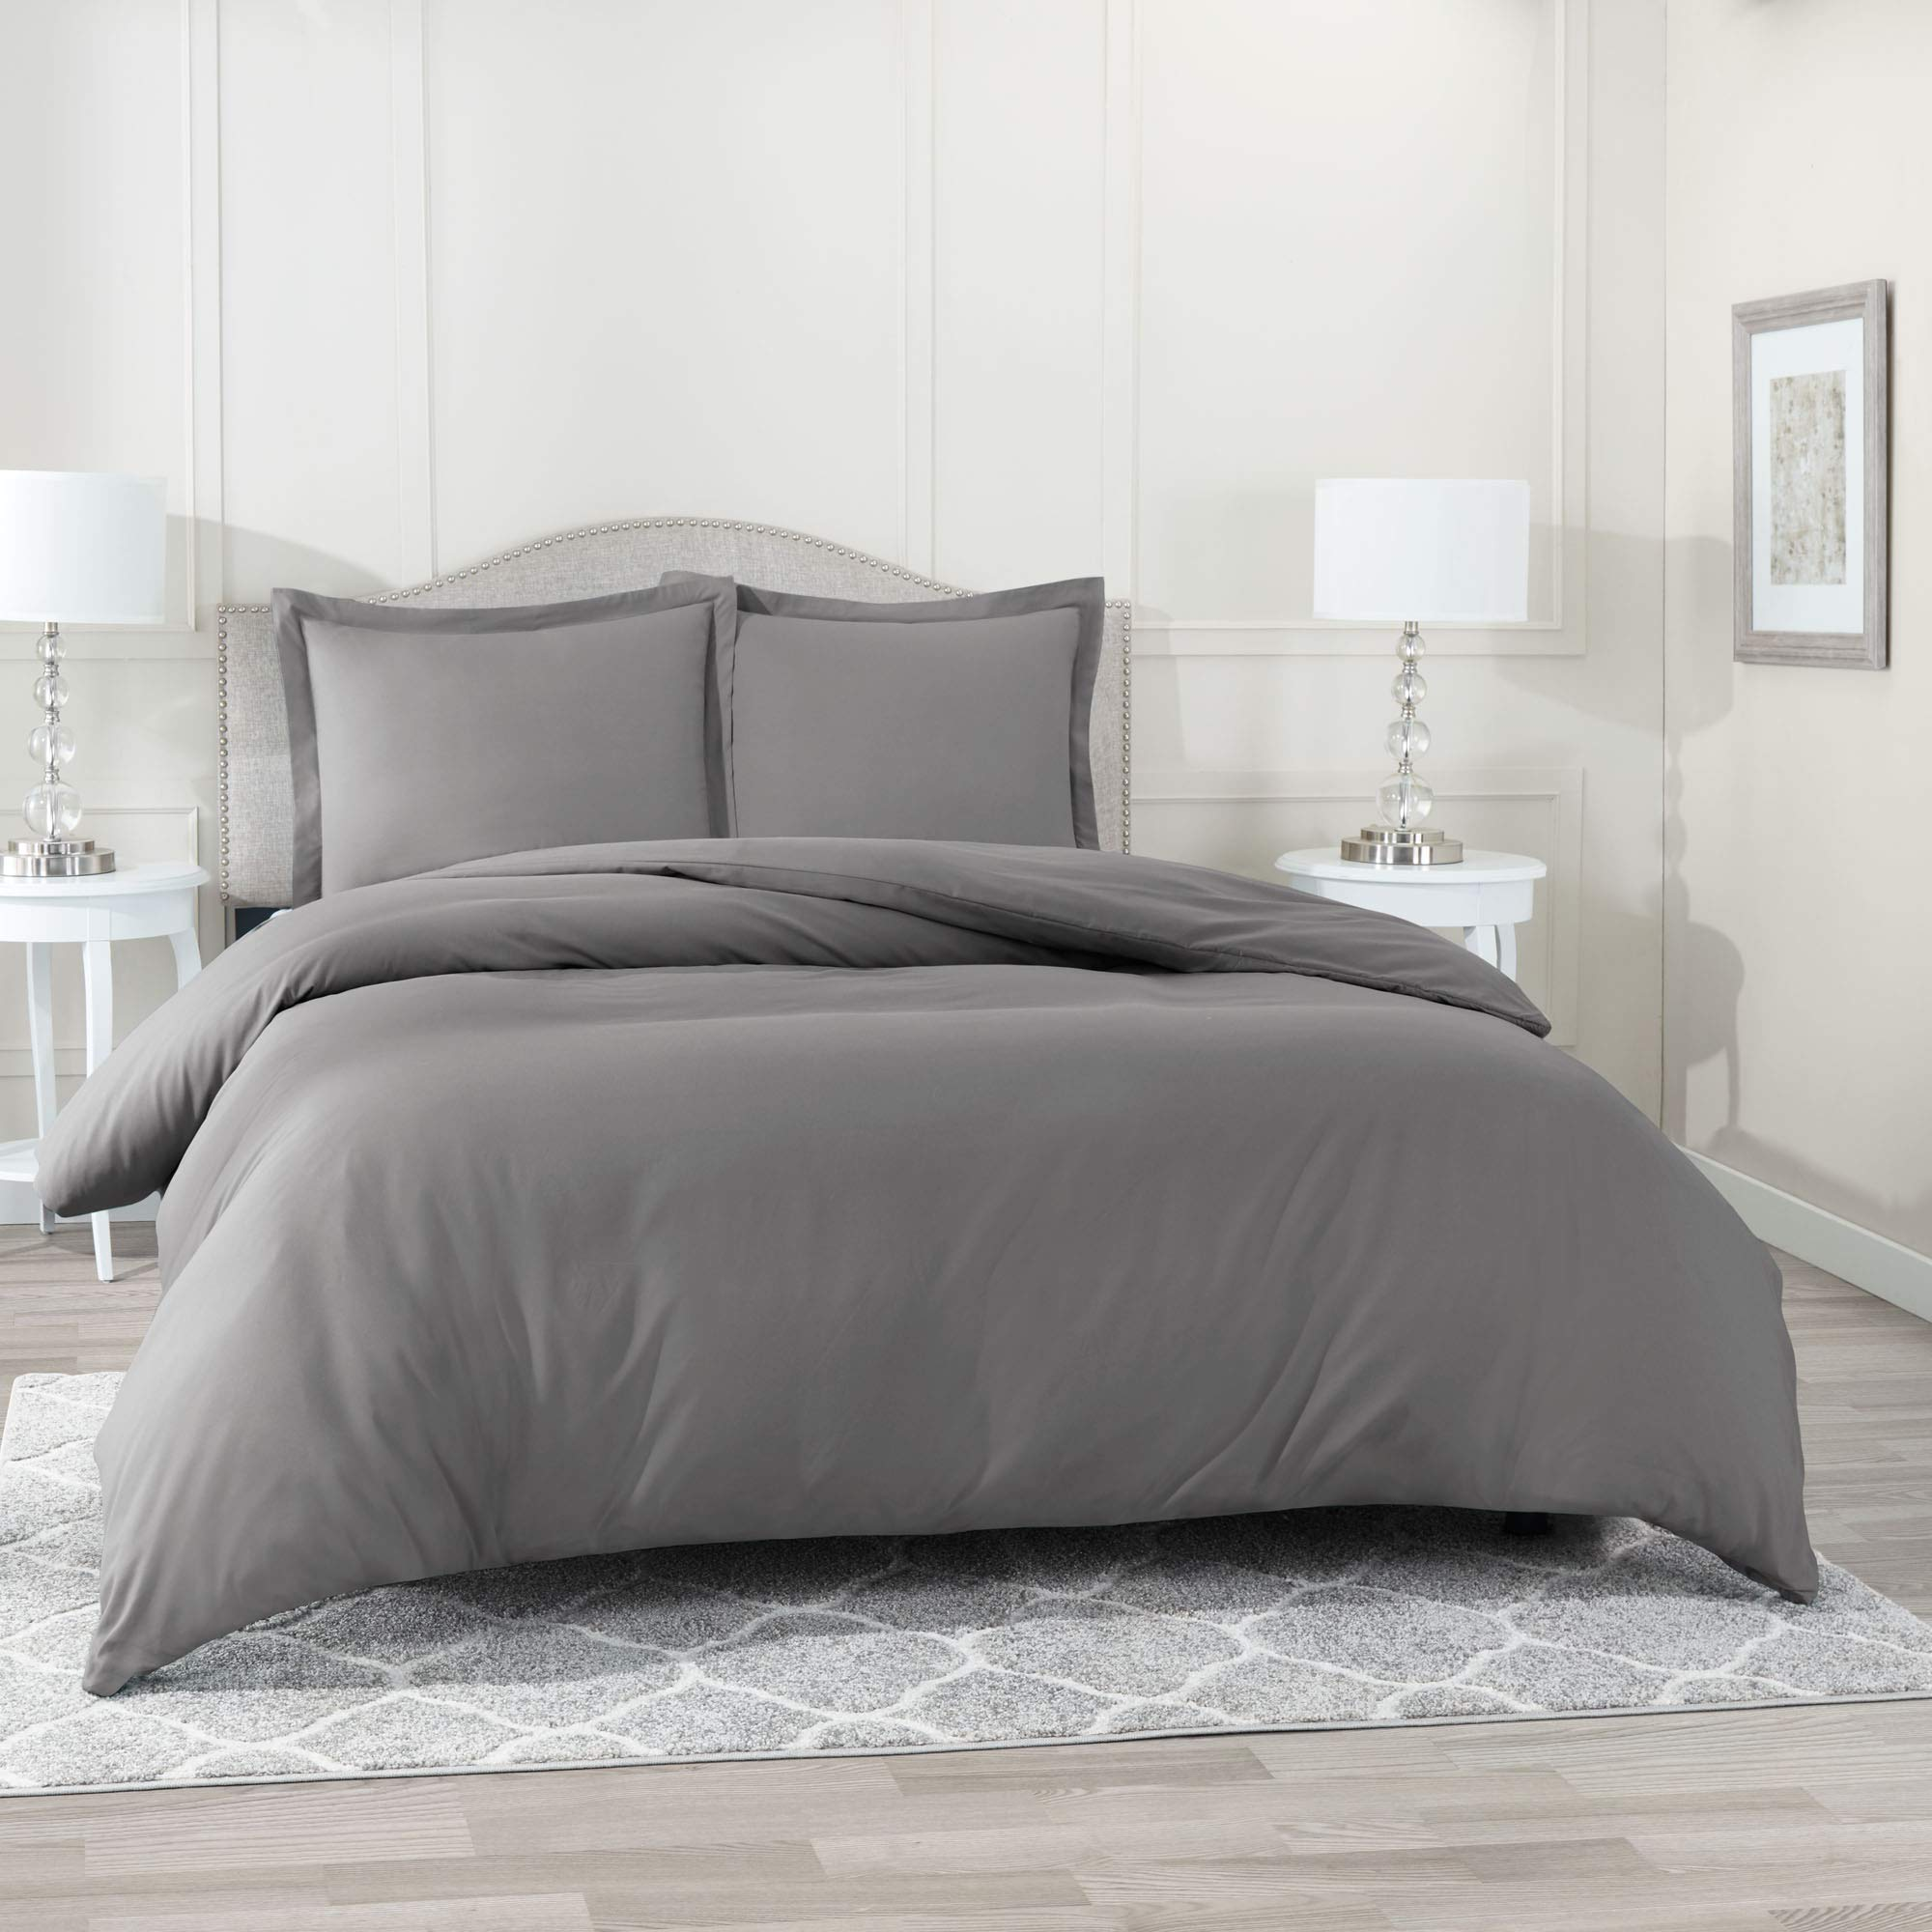 Nestl Bedding Duvet Cover, Protects and Covers your Comforter/Duvet Insert, Luxury 100% Super Soft Microfiber, Twin (Single) Size, Color Charcoal Gray, 2 Piece Duvet Cover Set Includes 1 Pillow Sham